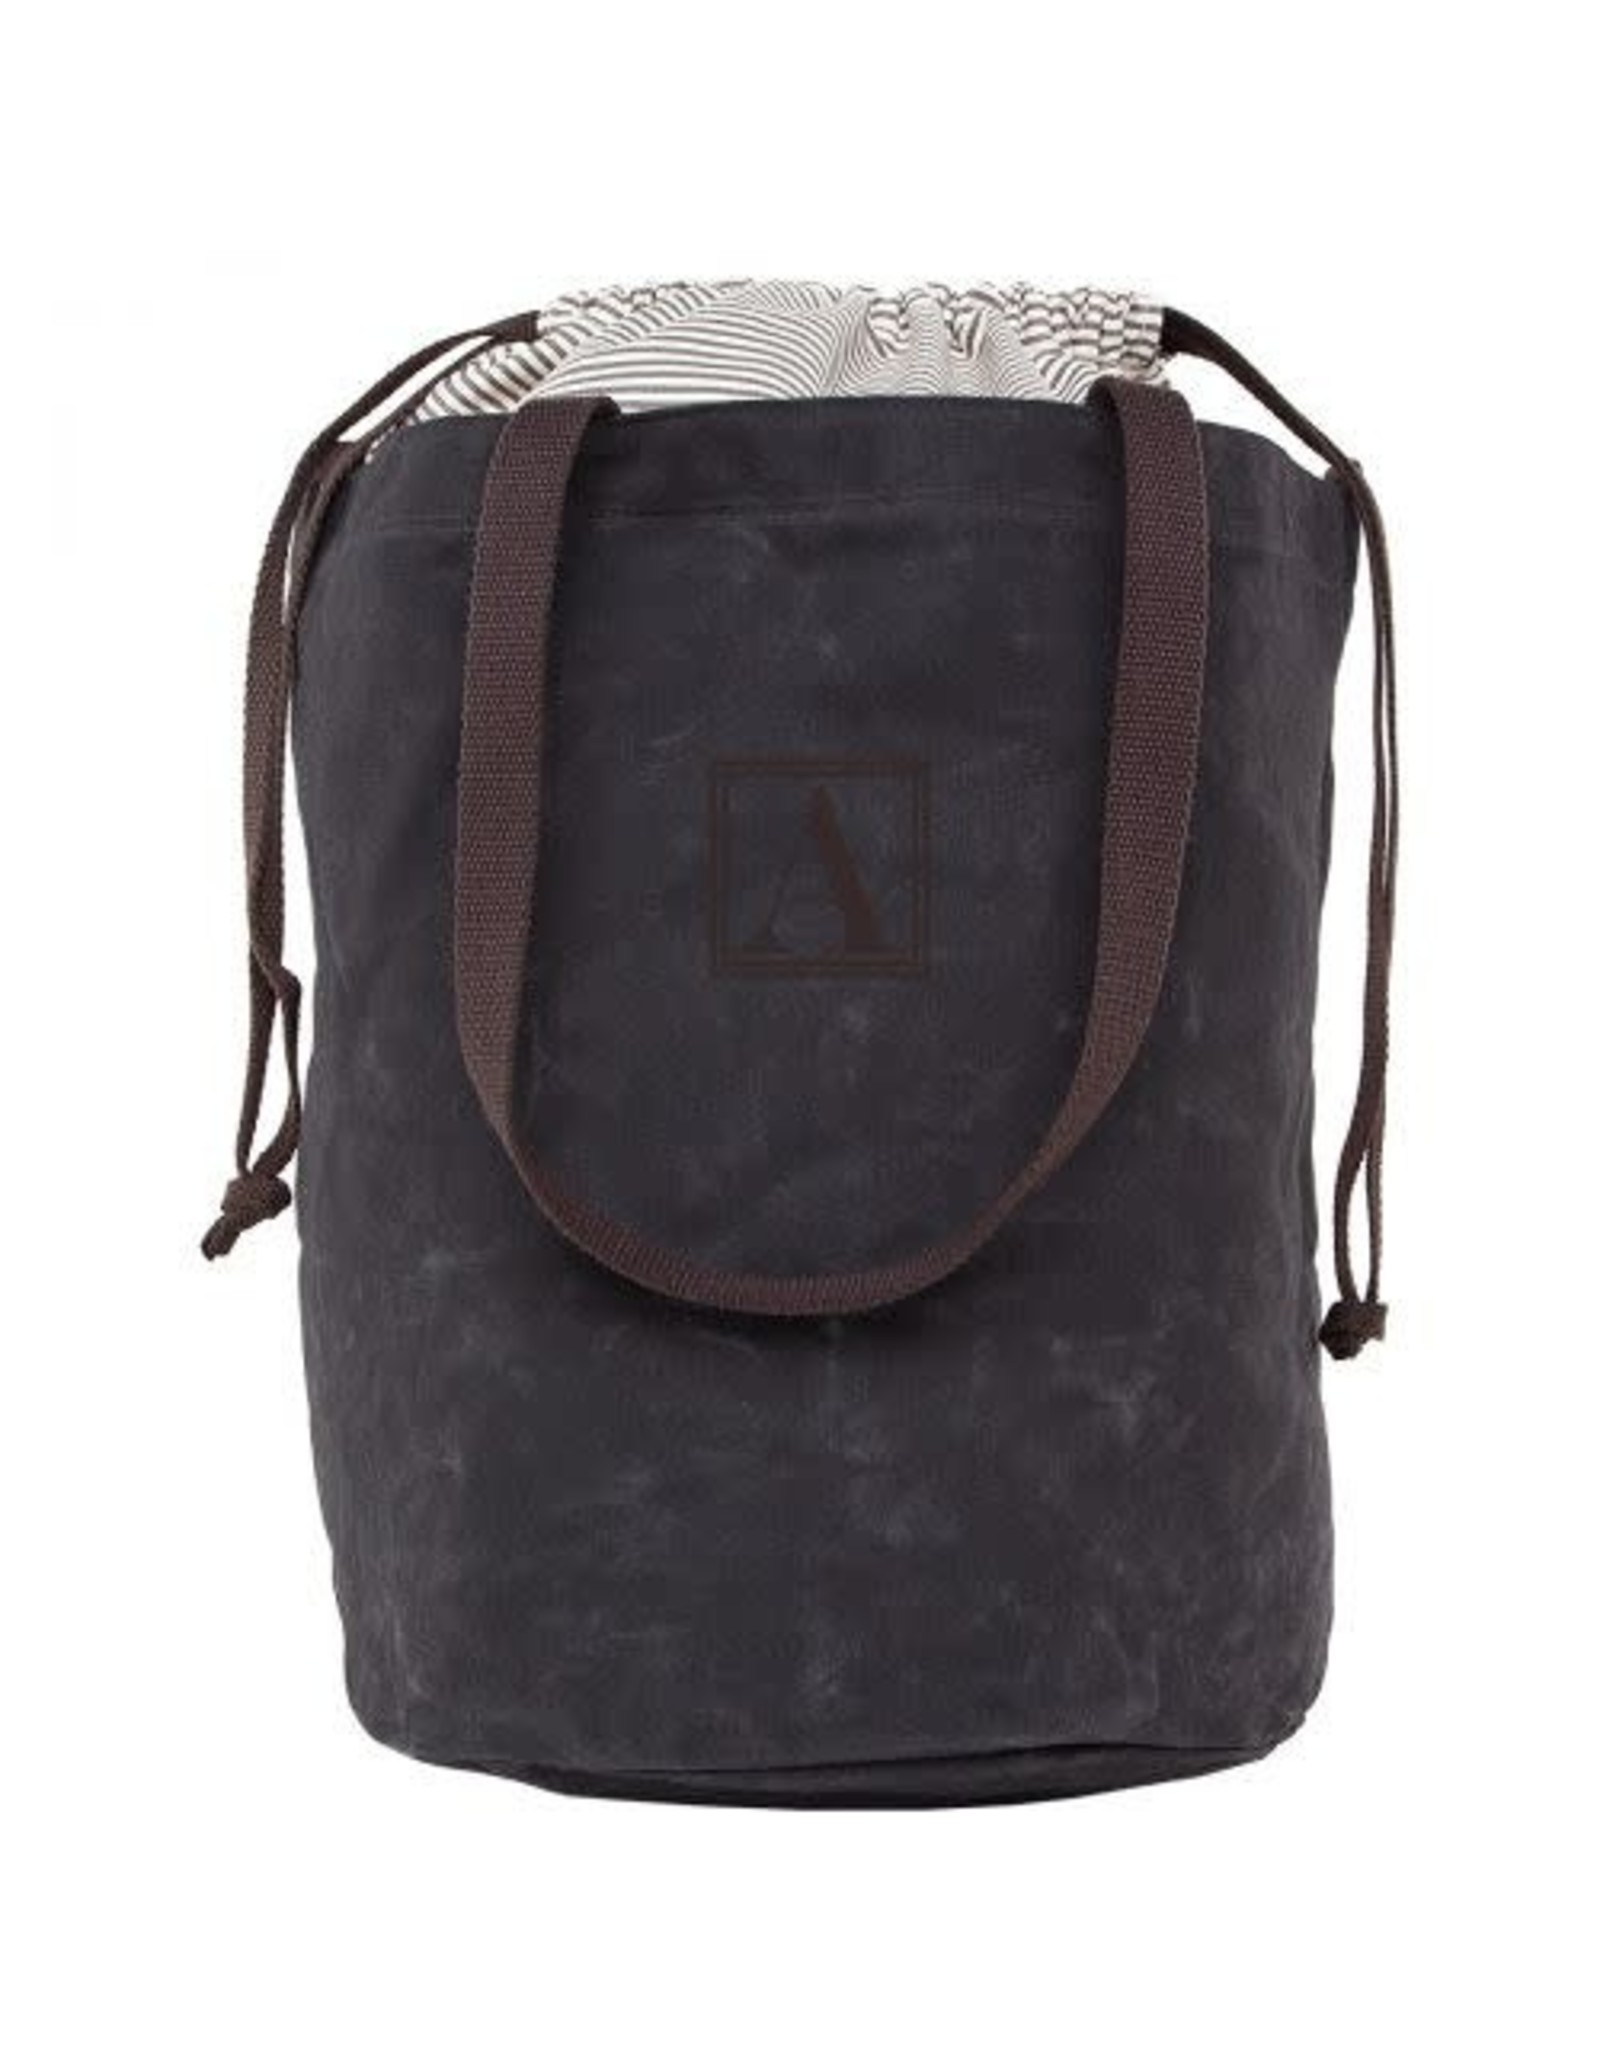 Laundry Duffel Waxed Cotton Black